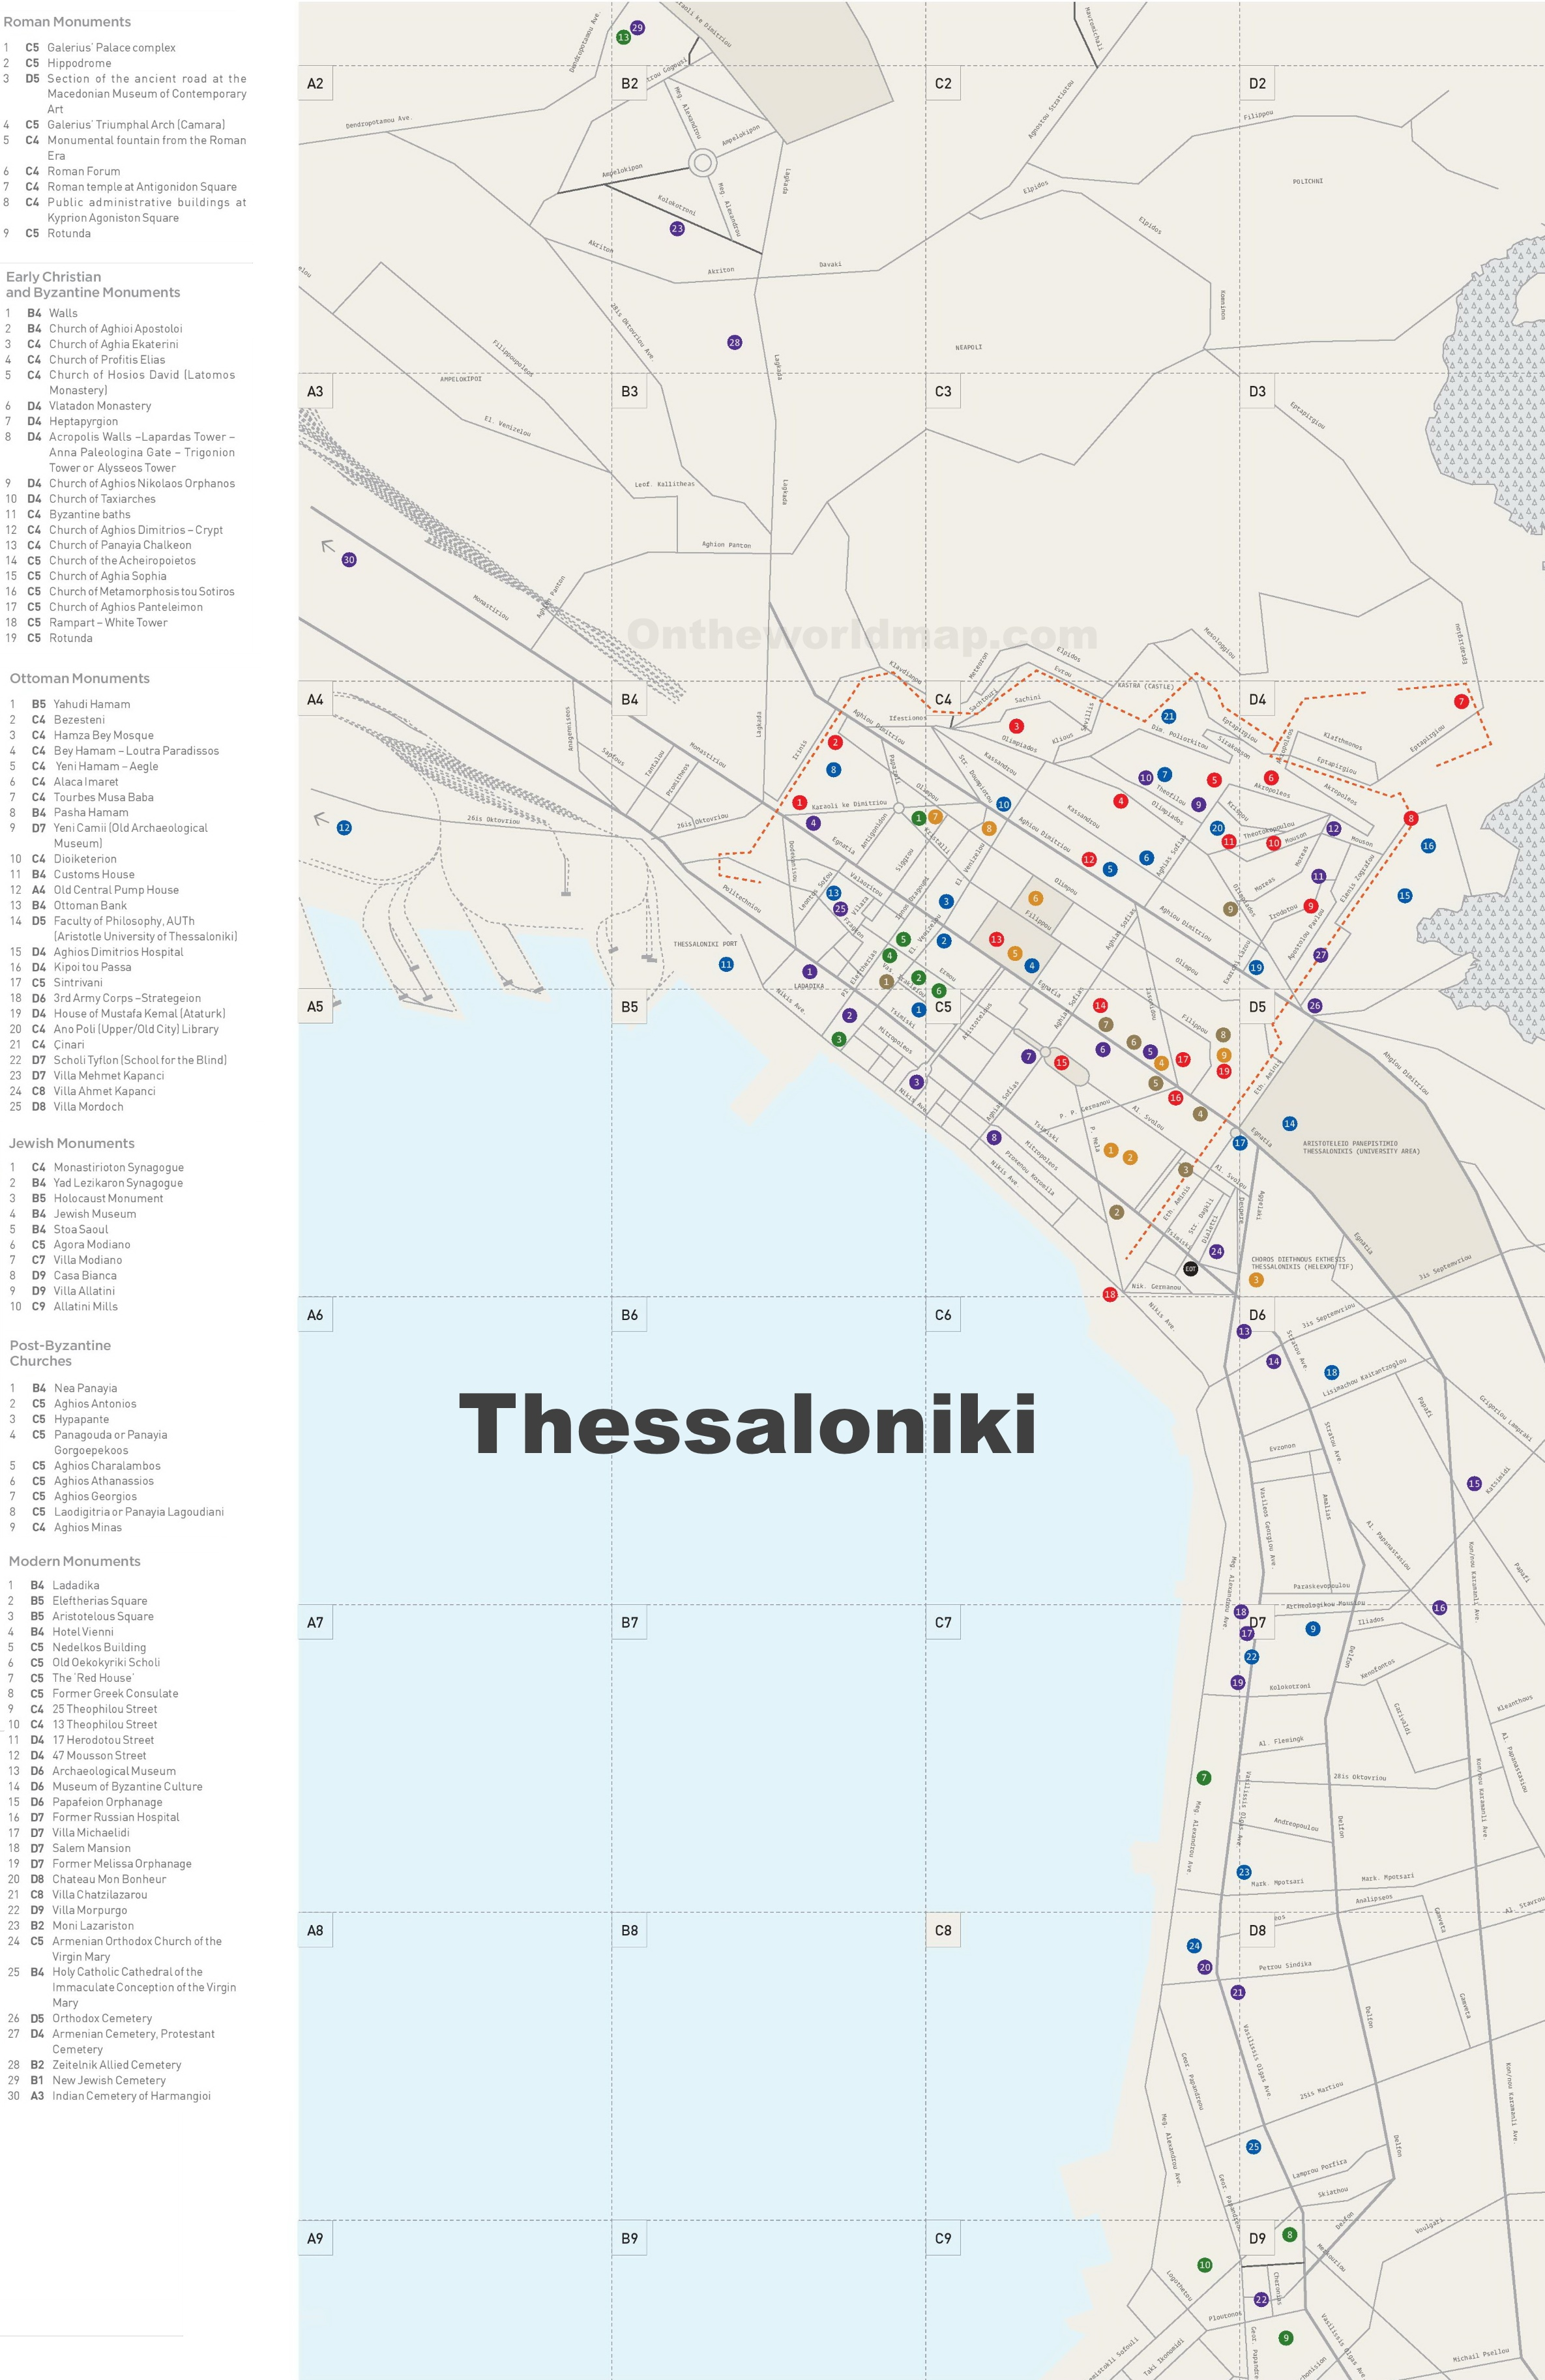 Thessaloniki monuments map